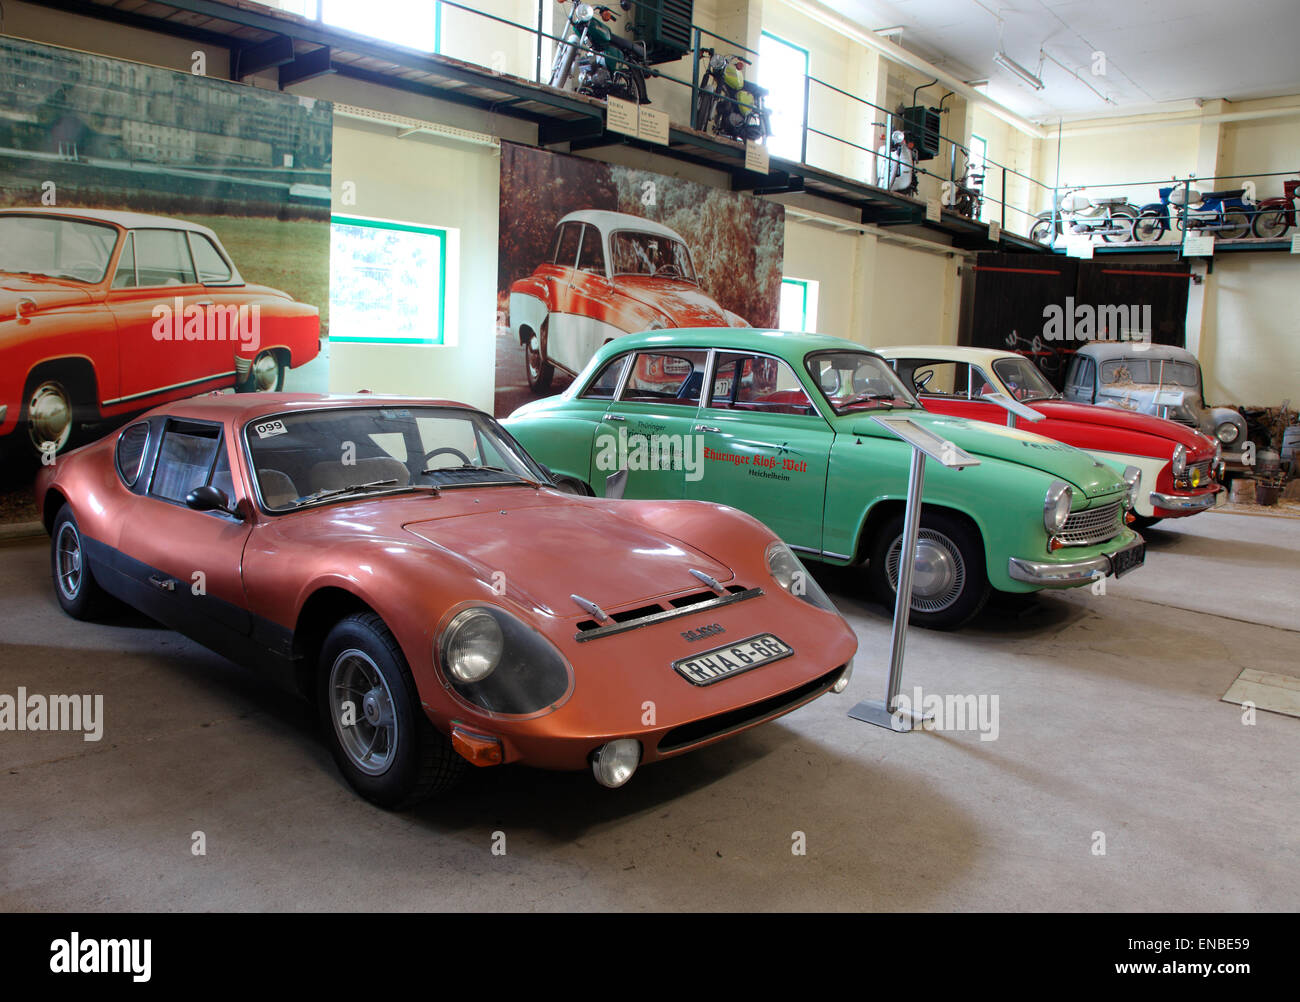 Vintage East German Eisenacher automobiles on display at the Thuringer Dumpling Museum. - Stock Image